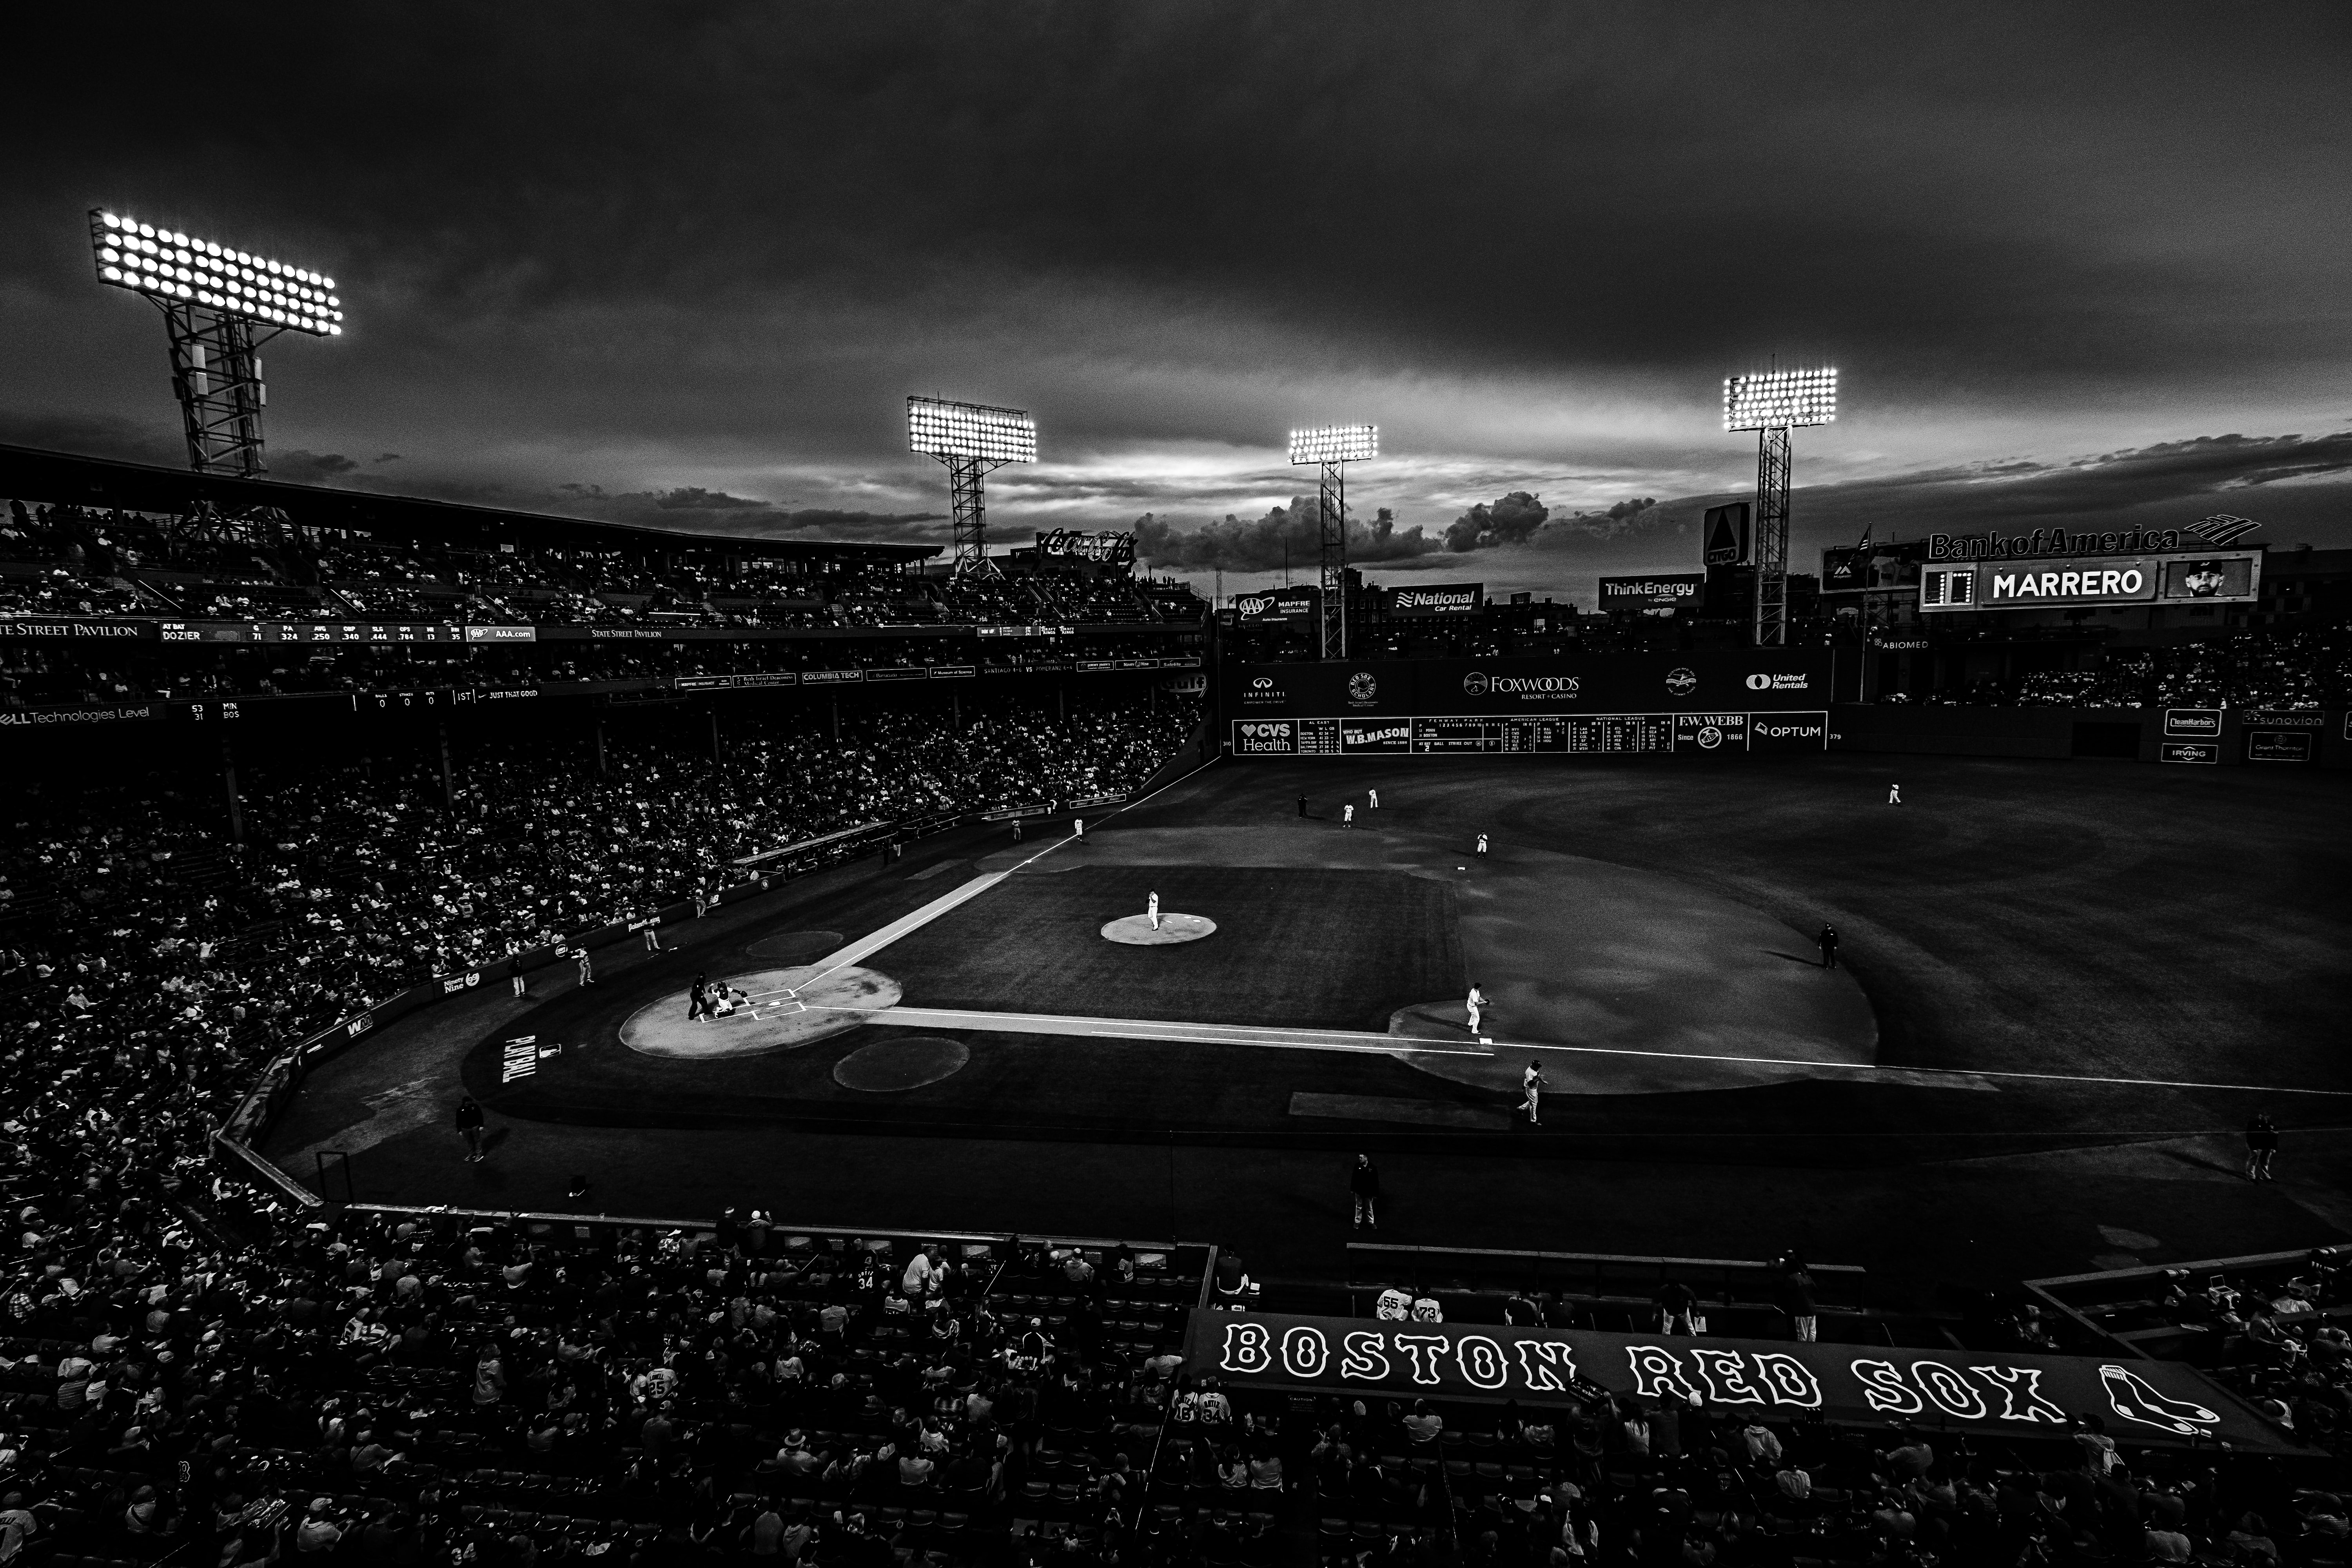 A black and white shot at night from behind the crowd at a Boston Red Sox game